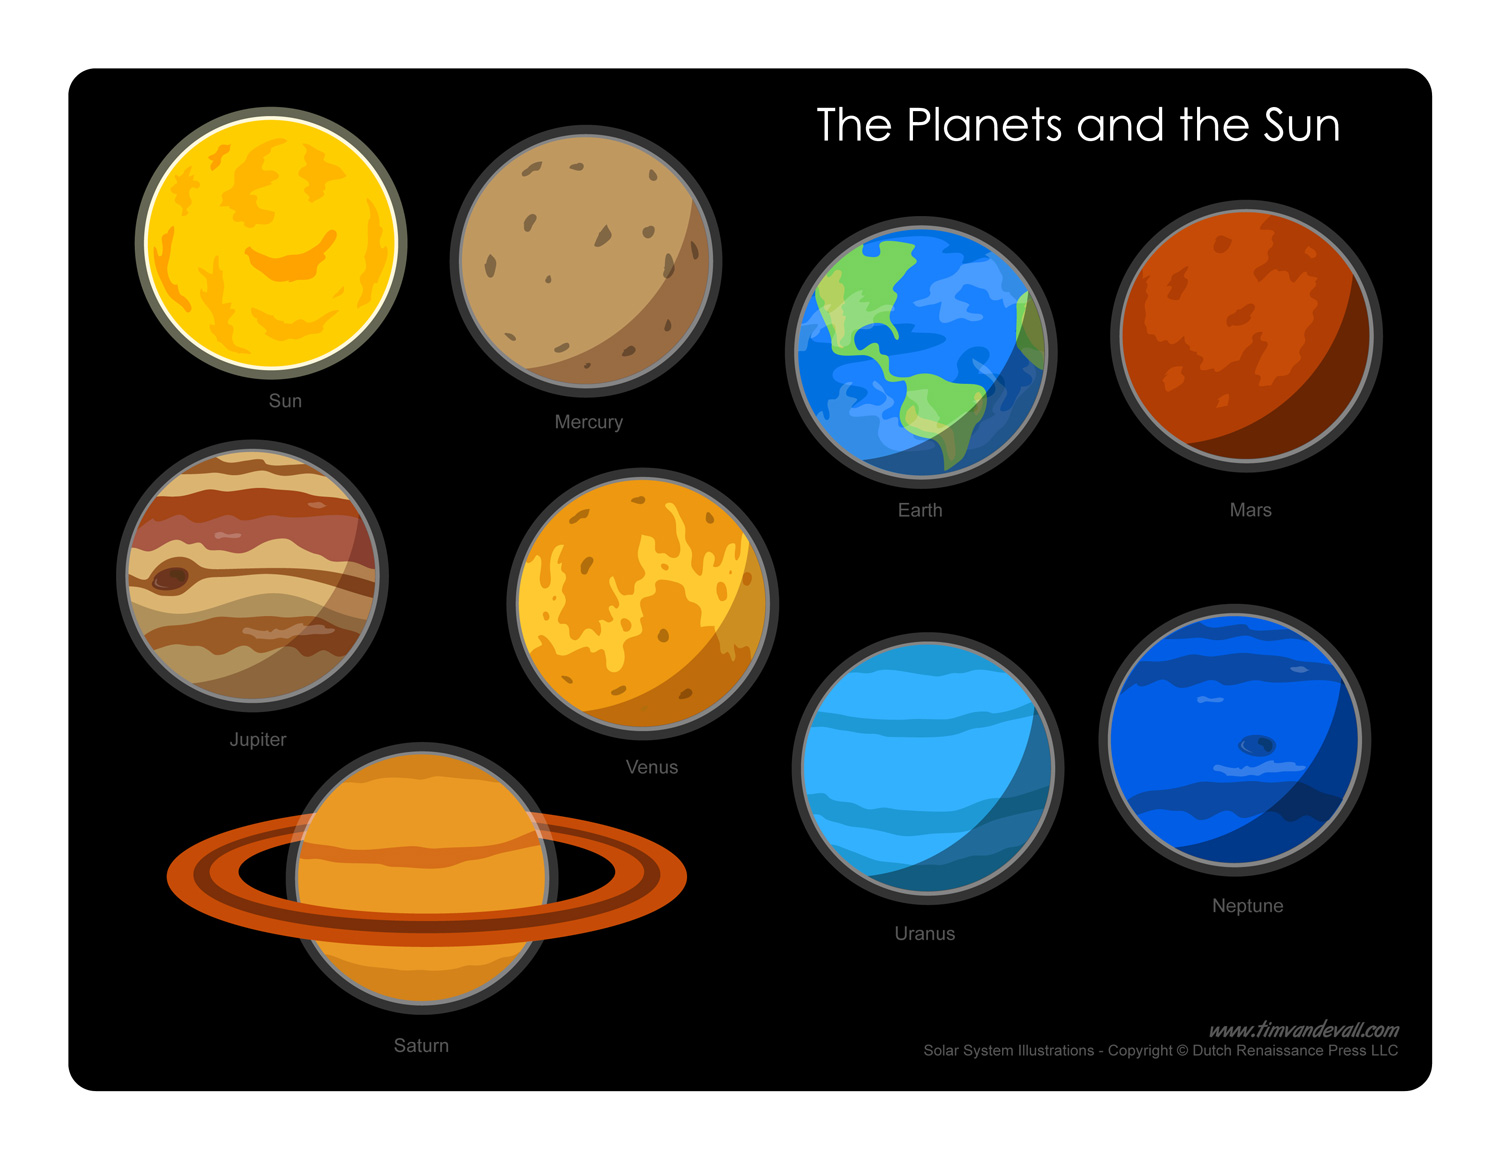 Drawn planets labeled In Our System the Solar